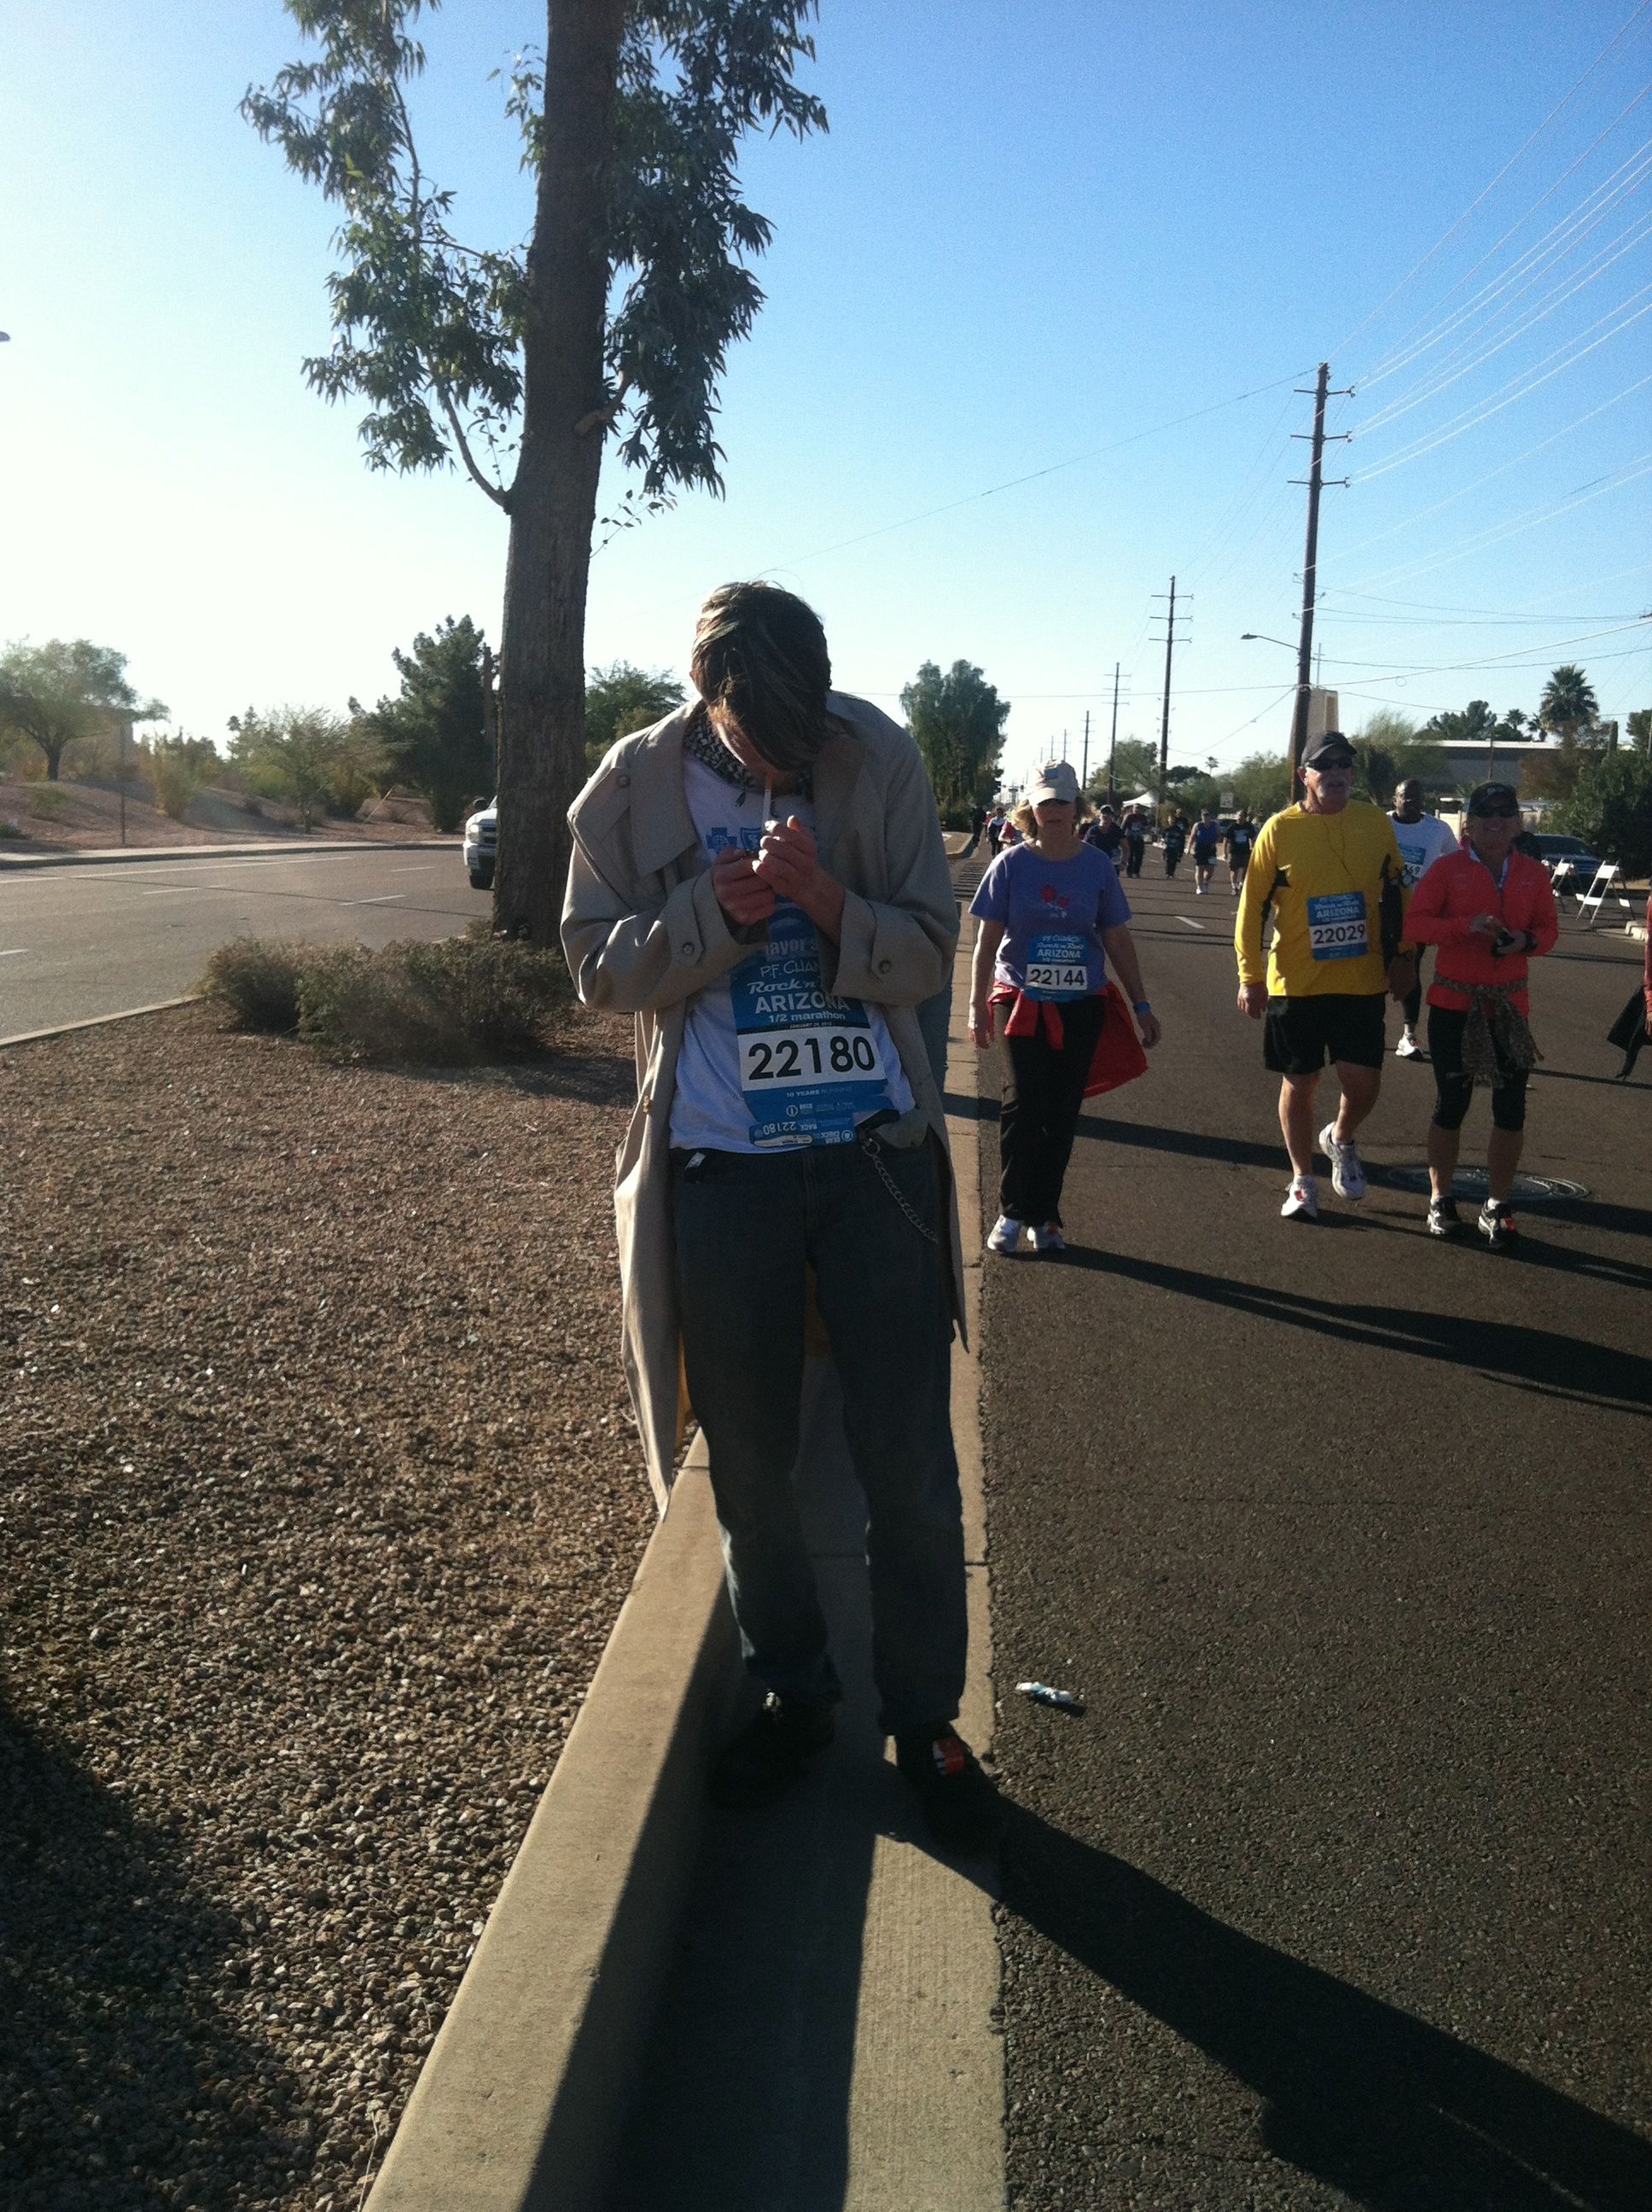 What?! Yes, indeed. This is a smoking half marathoner (during the race!).